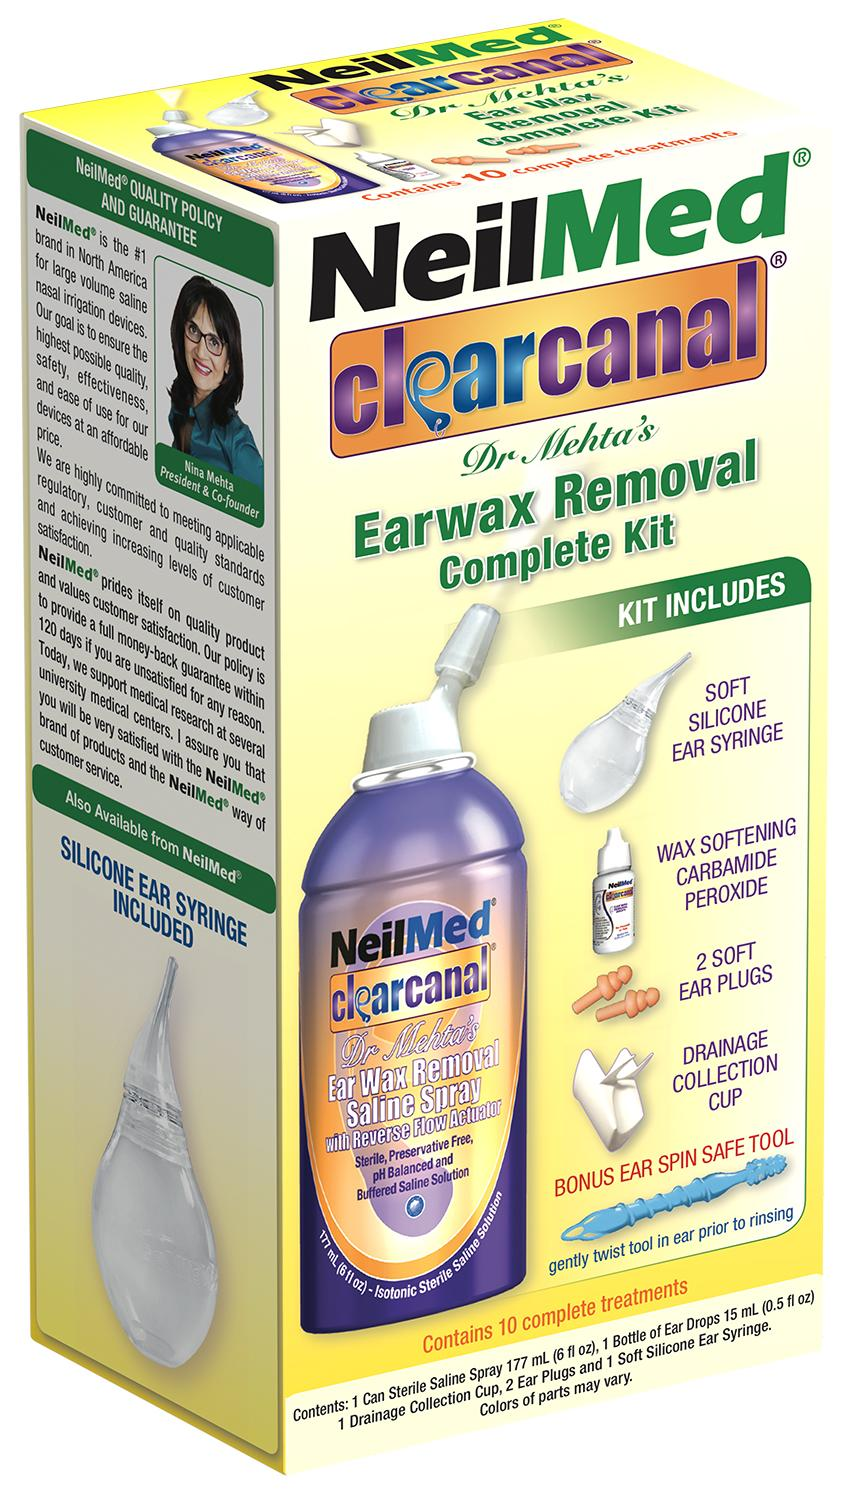 Neilmed Clearcanal Ear Wax Removal Complete Kit (2 Boxes) By Vitamin.sg.